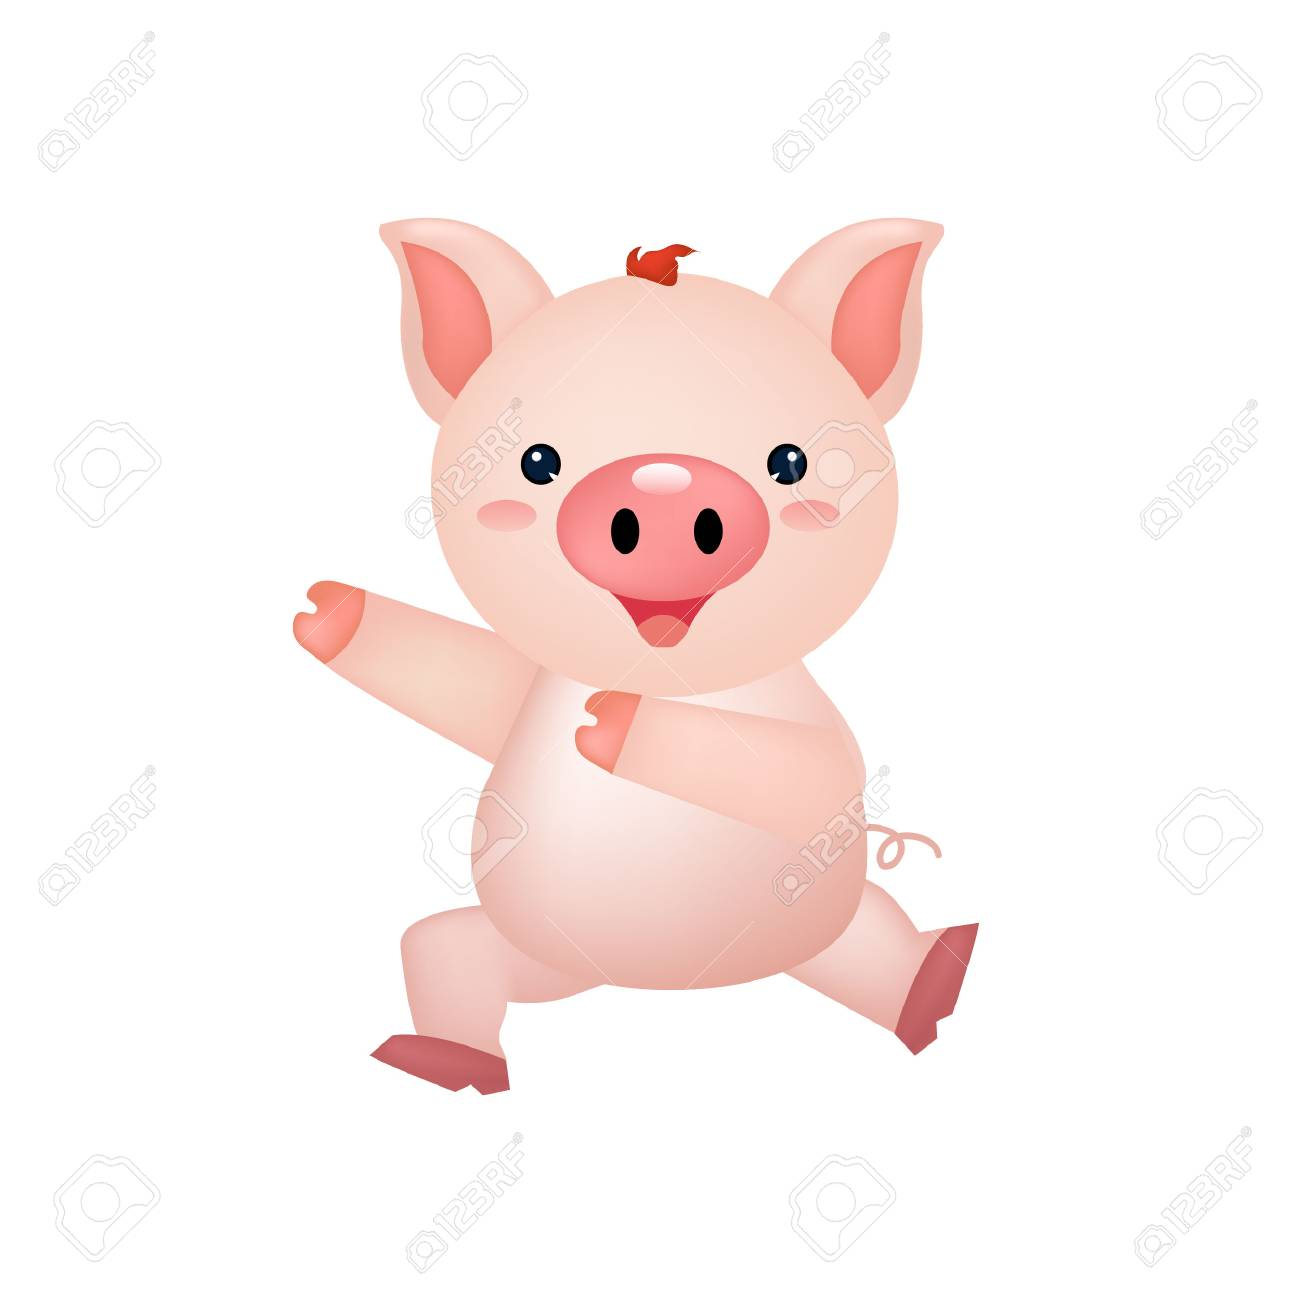 Cute Pig Happy Dance Illustration Royalty Free Cliparts Vectors And Stock Illustration Image 117796307